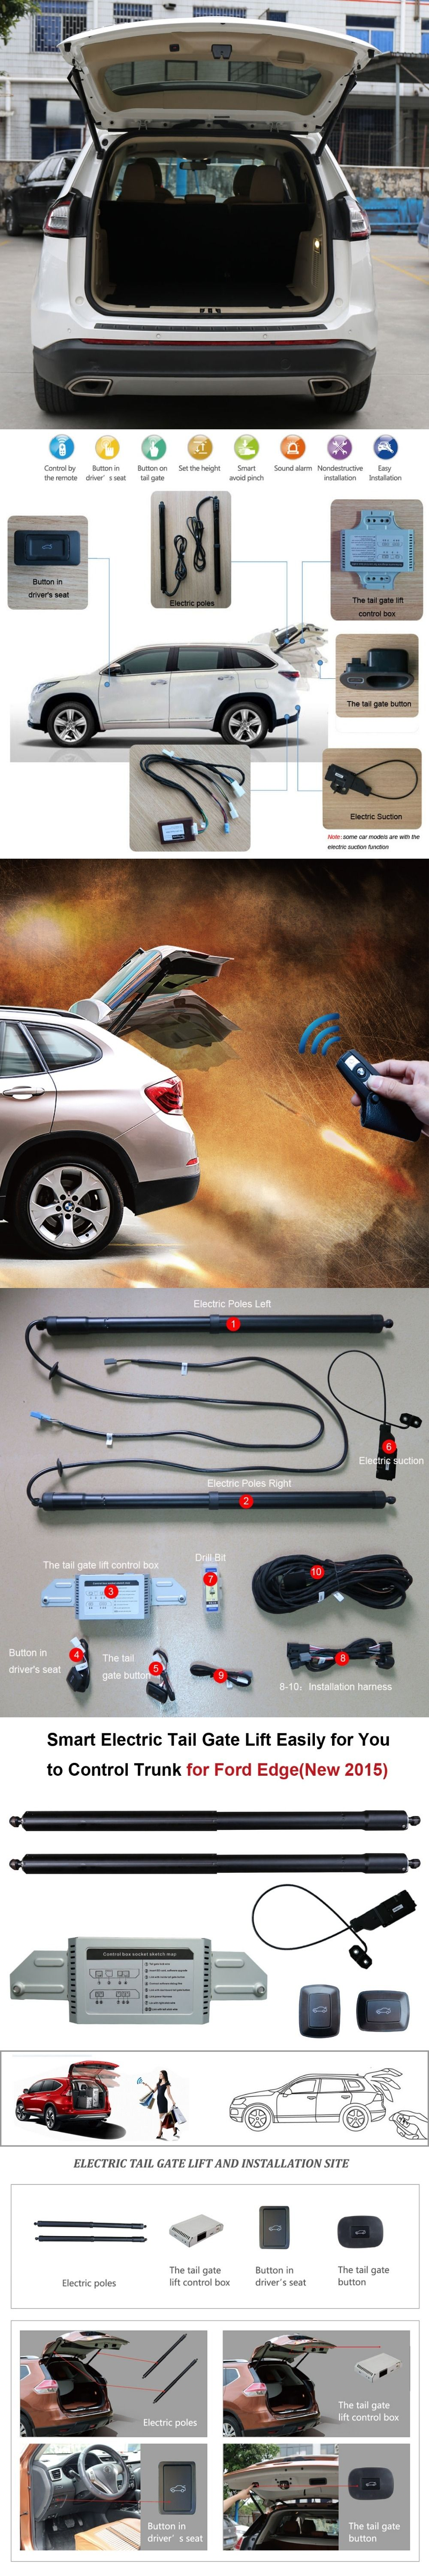 Smart Auto Electric Tail Gate Lift For Ford Edge Remote Control Set Height Avoid Pinch With